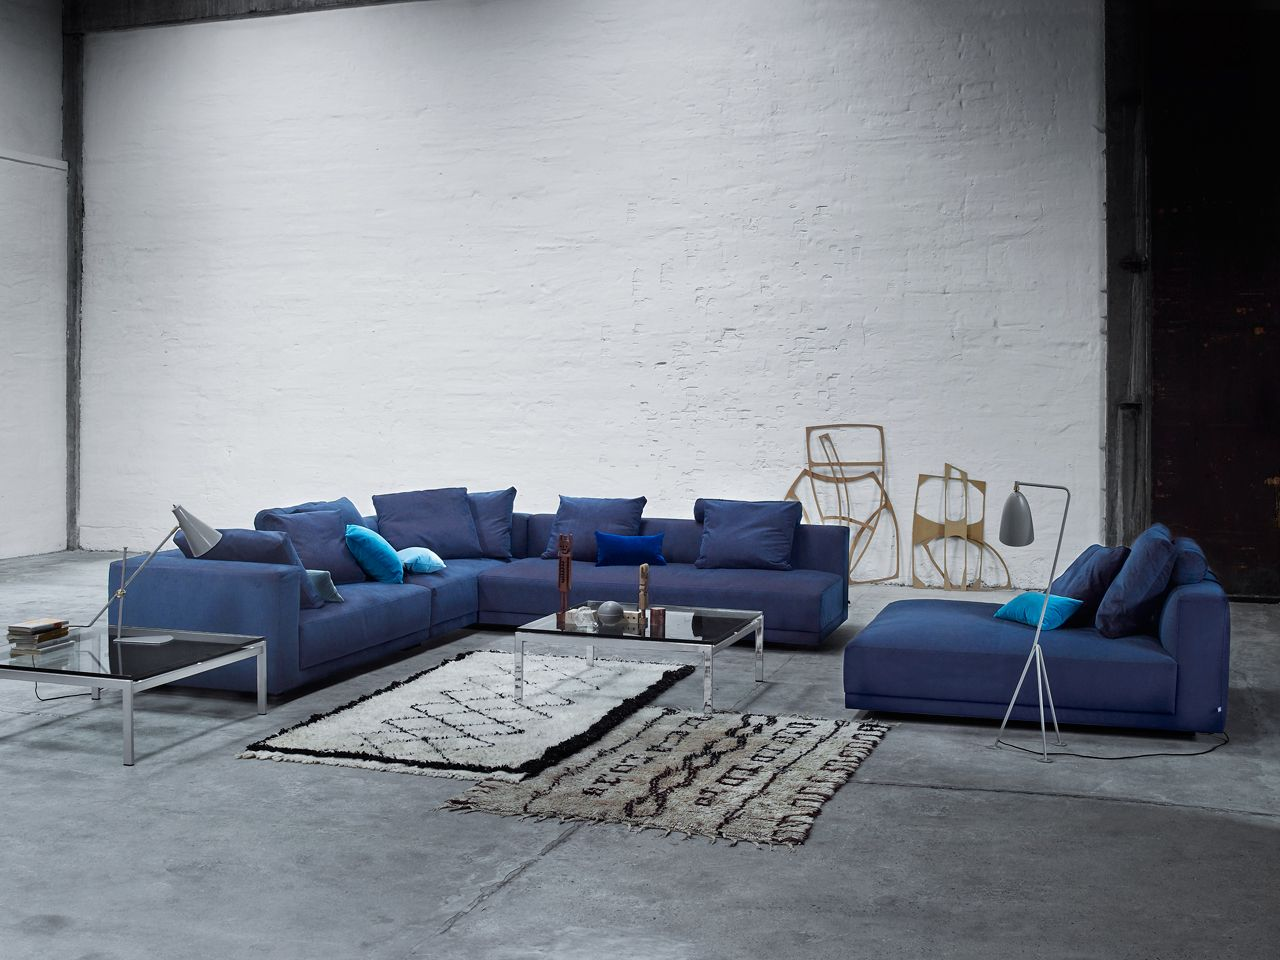 rig av jens juul eilersen modul sofa jeans i love you. Black Bedroom Furniture Sets. Home Design Ideas